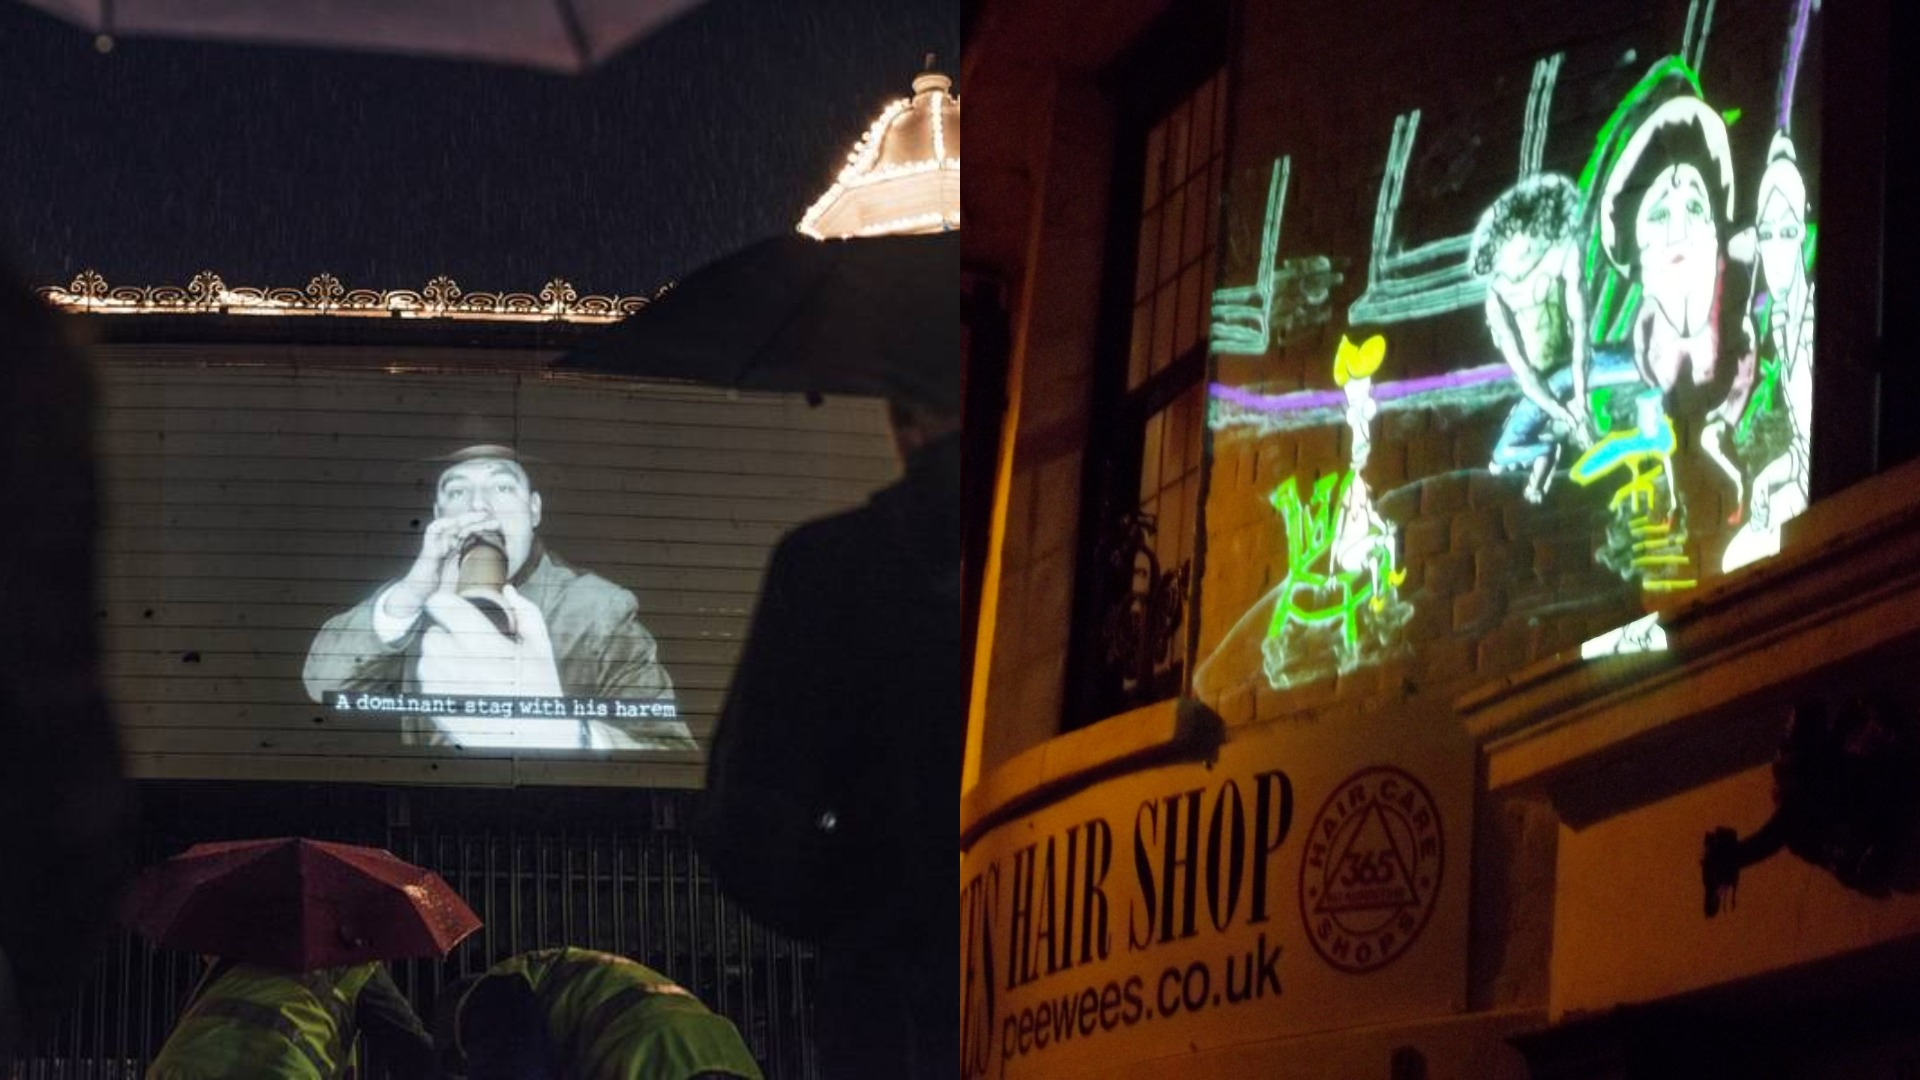 Left: A man is projected onto the side of Brighton pier, on the right an animation is projected onto PeeWee's hairdressers.